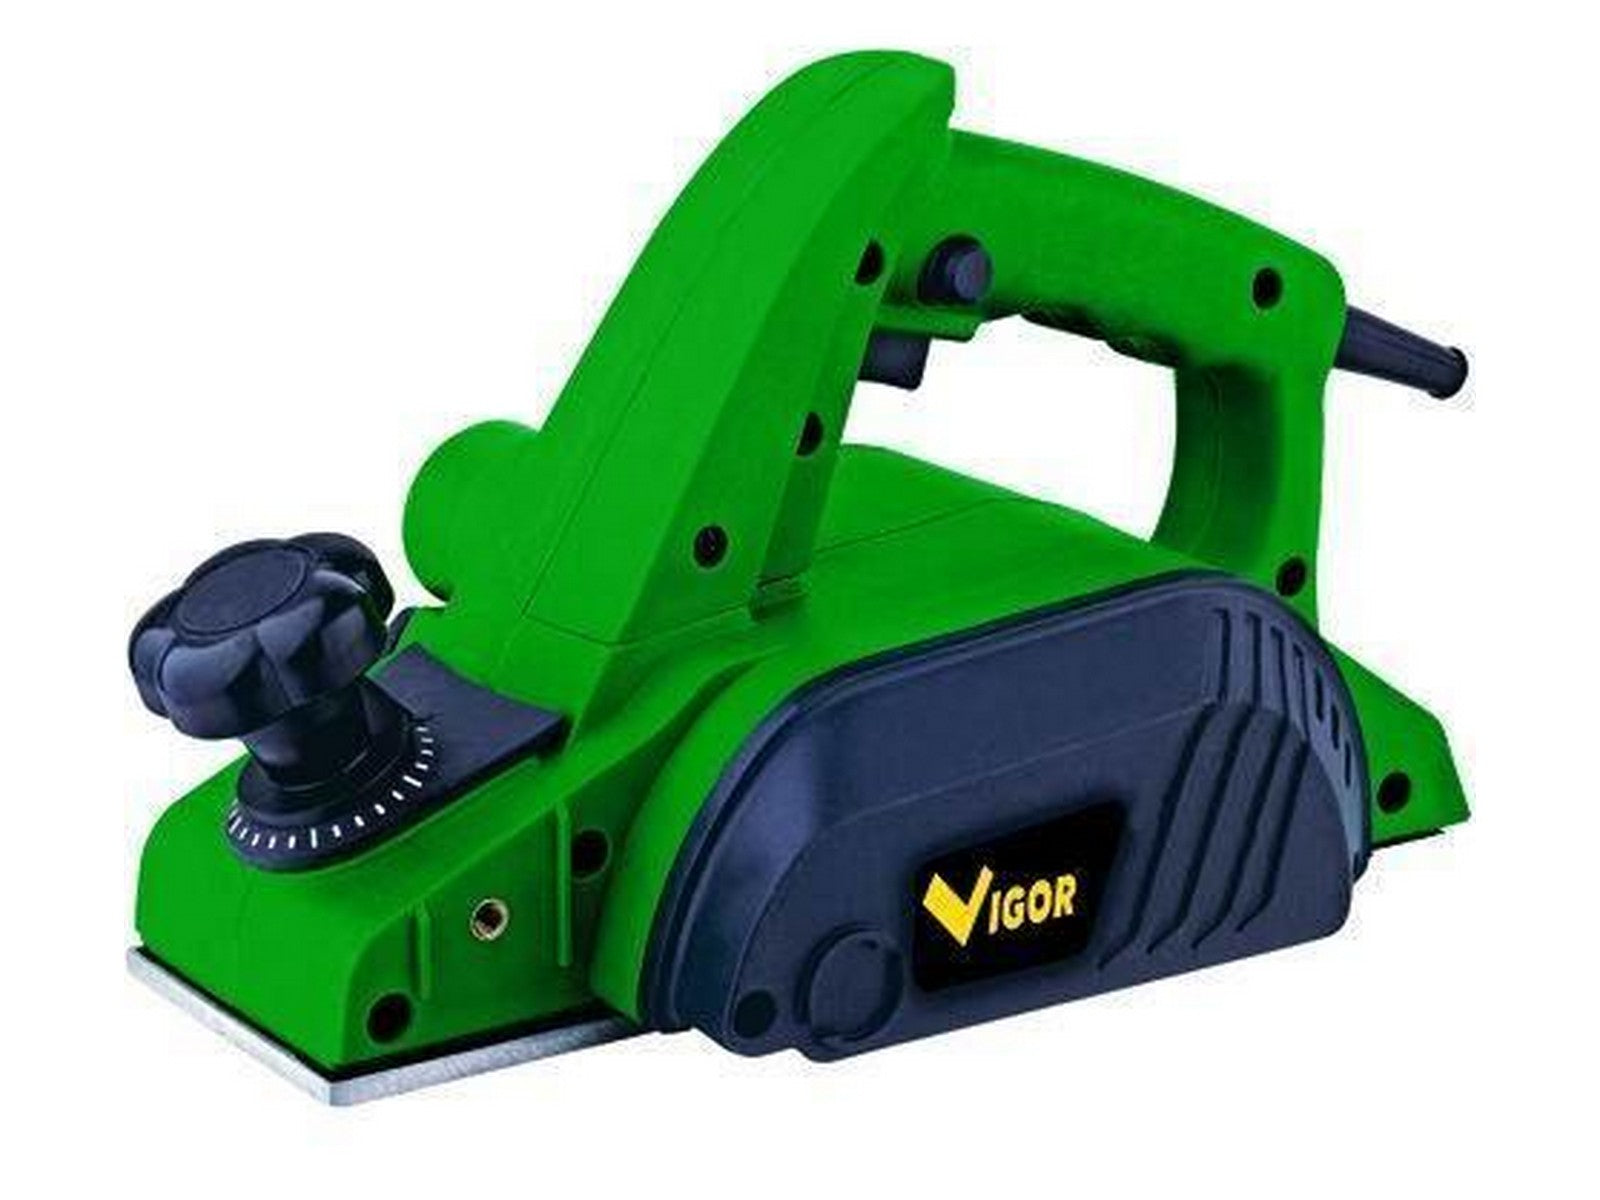 PIALLETTI VIGOR GREENLINEWATT 6006PZ